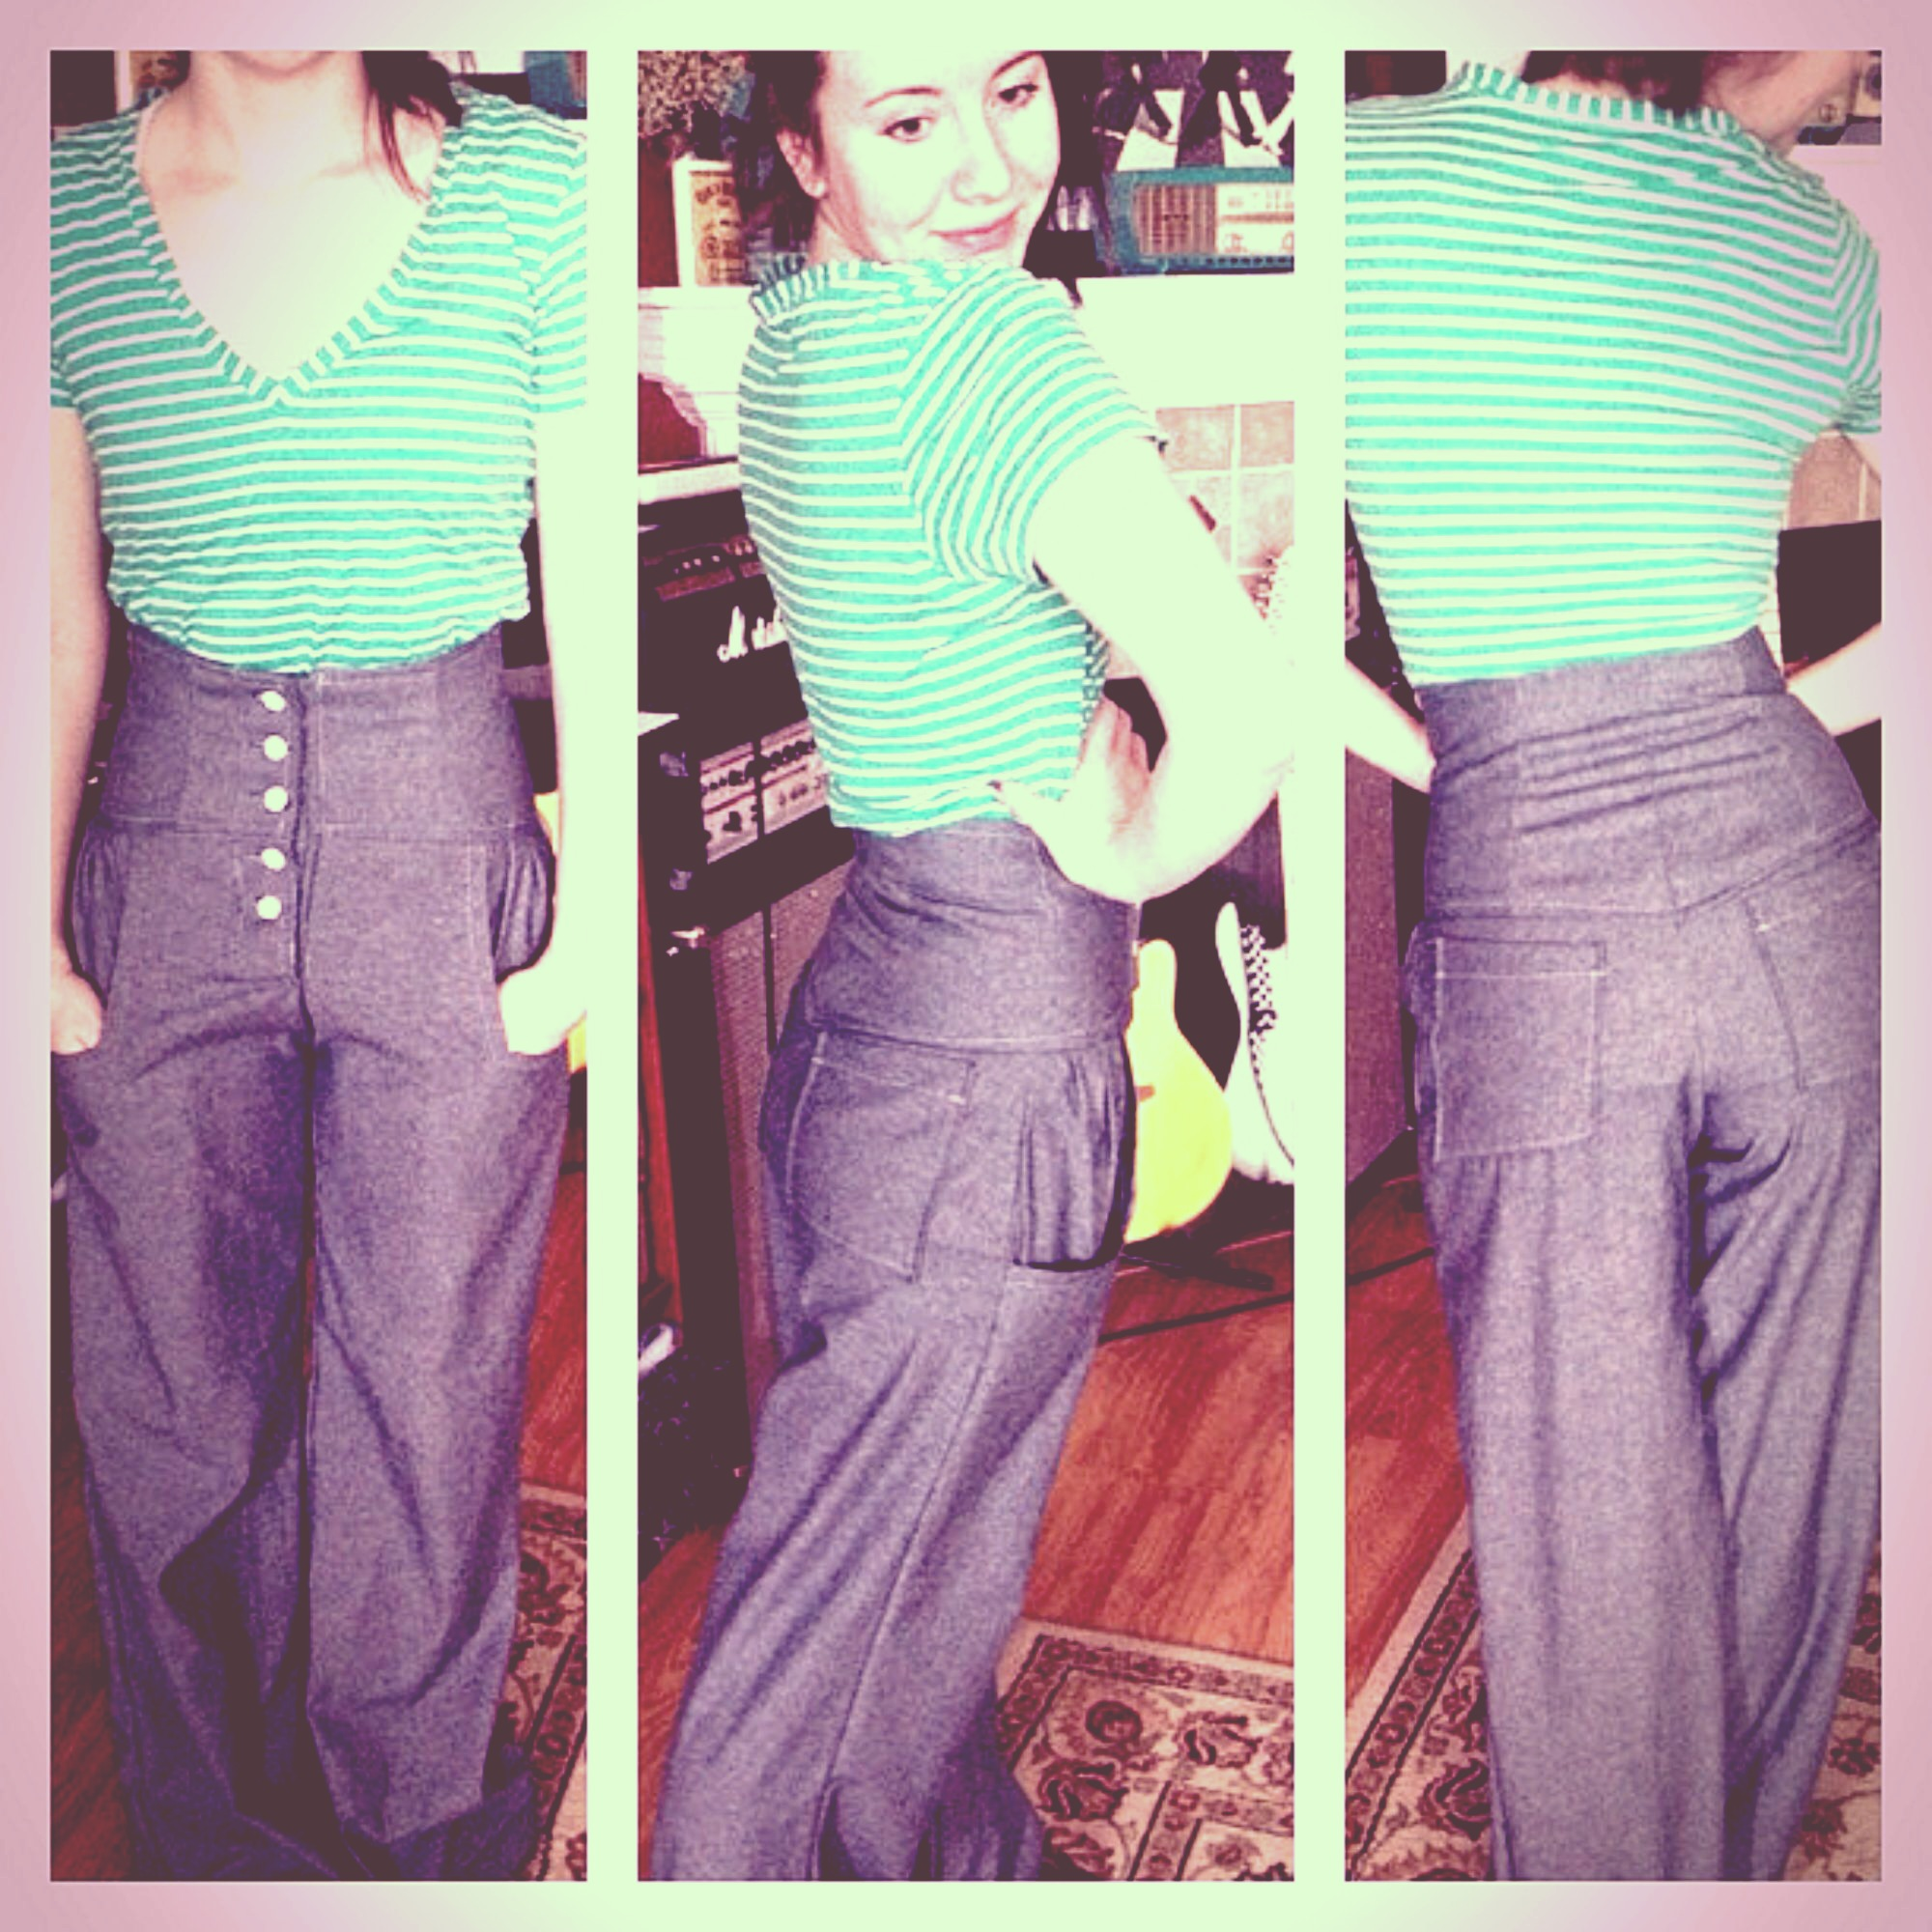 heresfilmz8.ga: vintage high waisted pants. From The Community. Amazon Try Prime All Trendy pencil pants with two pockets design,vintage plaid pattern Women's 50s Retro Rockabilly Style High Waist Pinup Pants. by Penelope Vintage. $ $ 33 90 Prime. FREE Shipping on eligible orders.